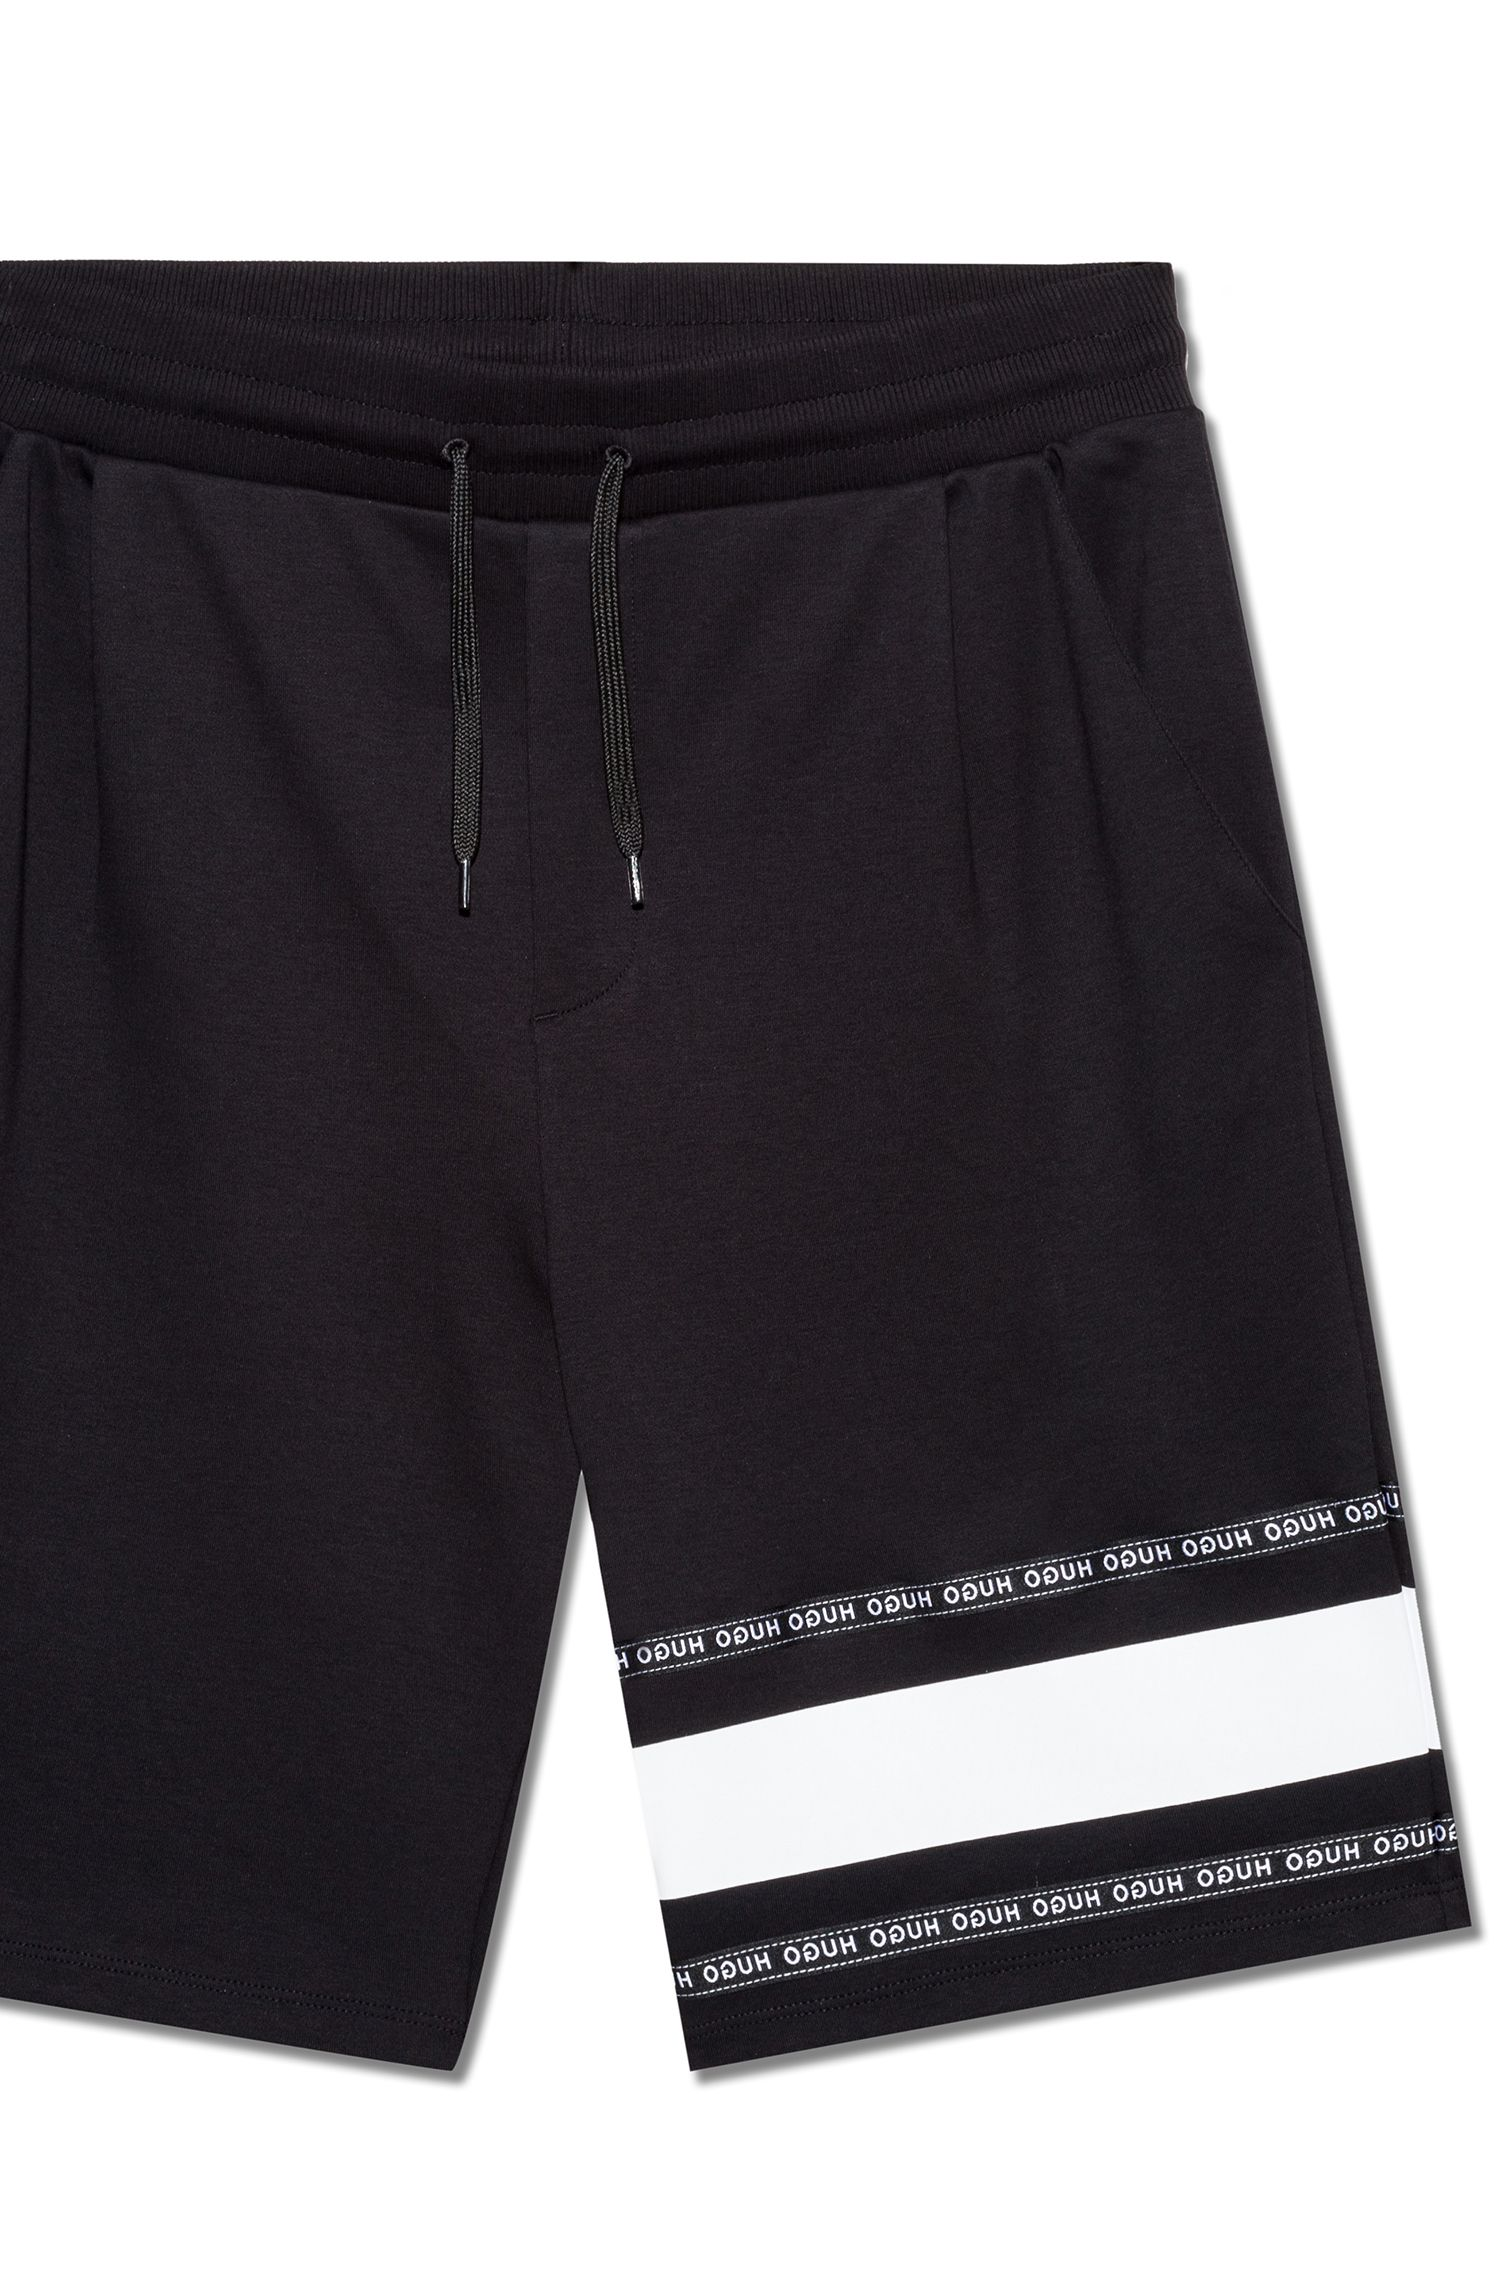 Interlock-cotton shorts with logo-tape detailing, Black